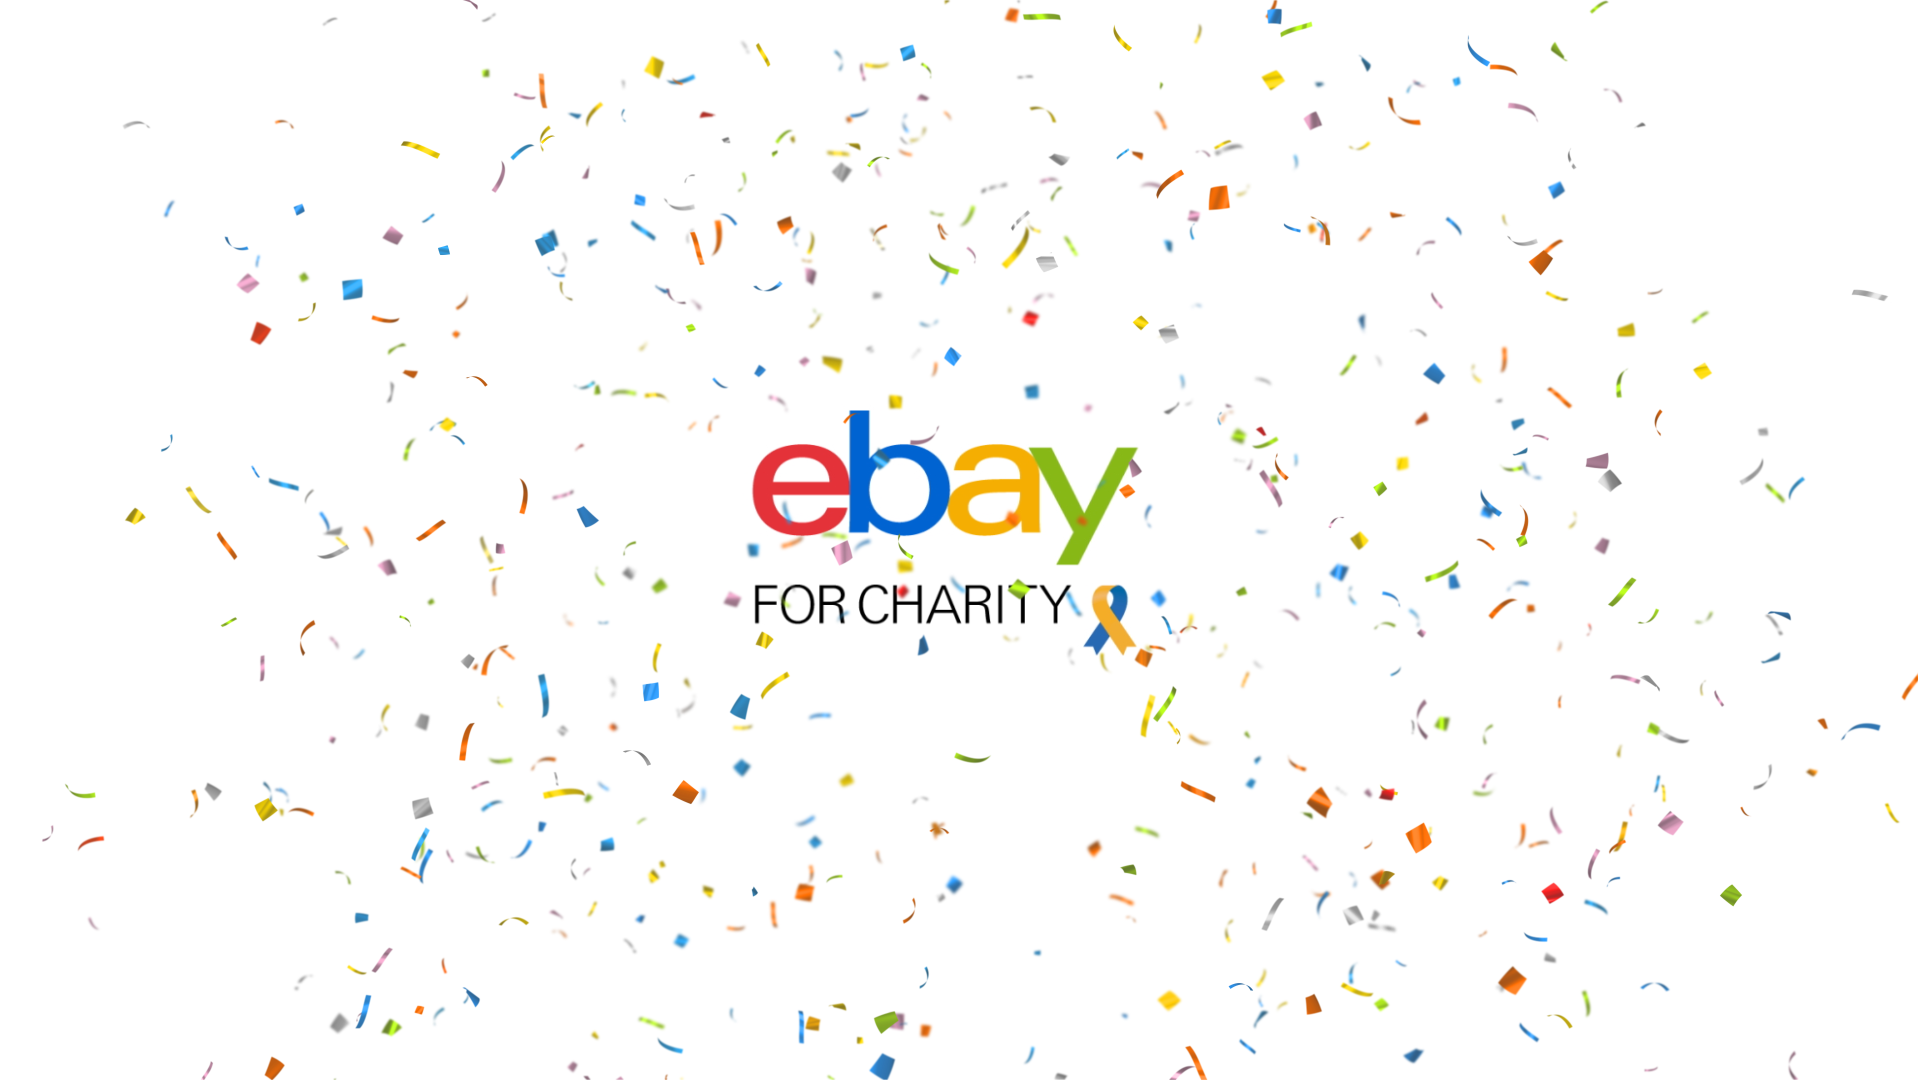 Home Ebay For Charity